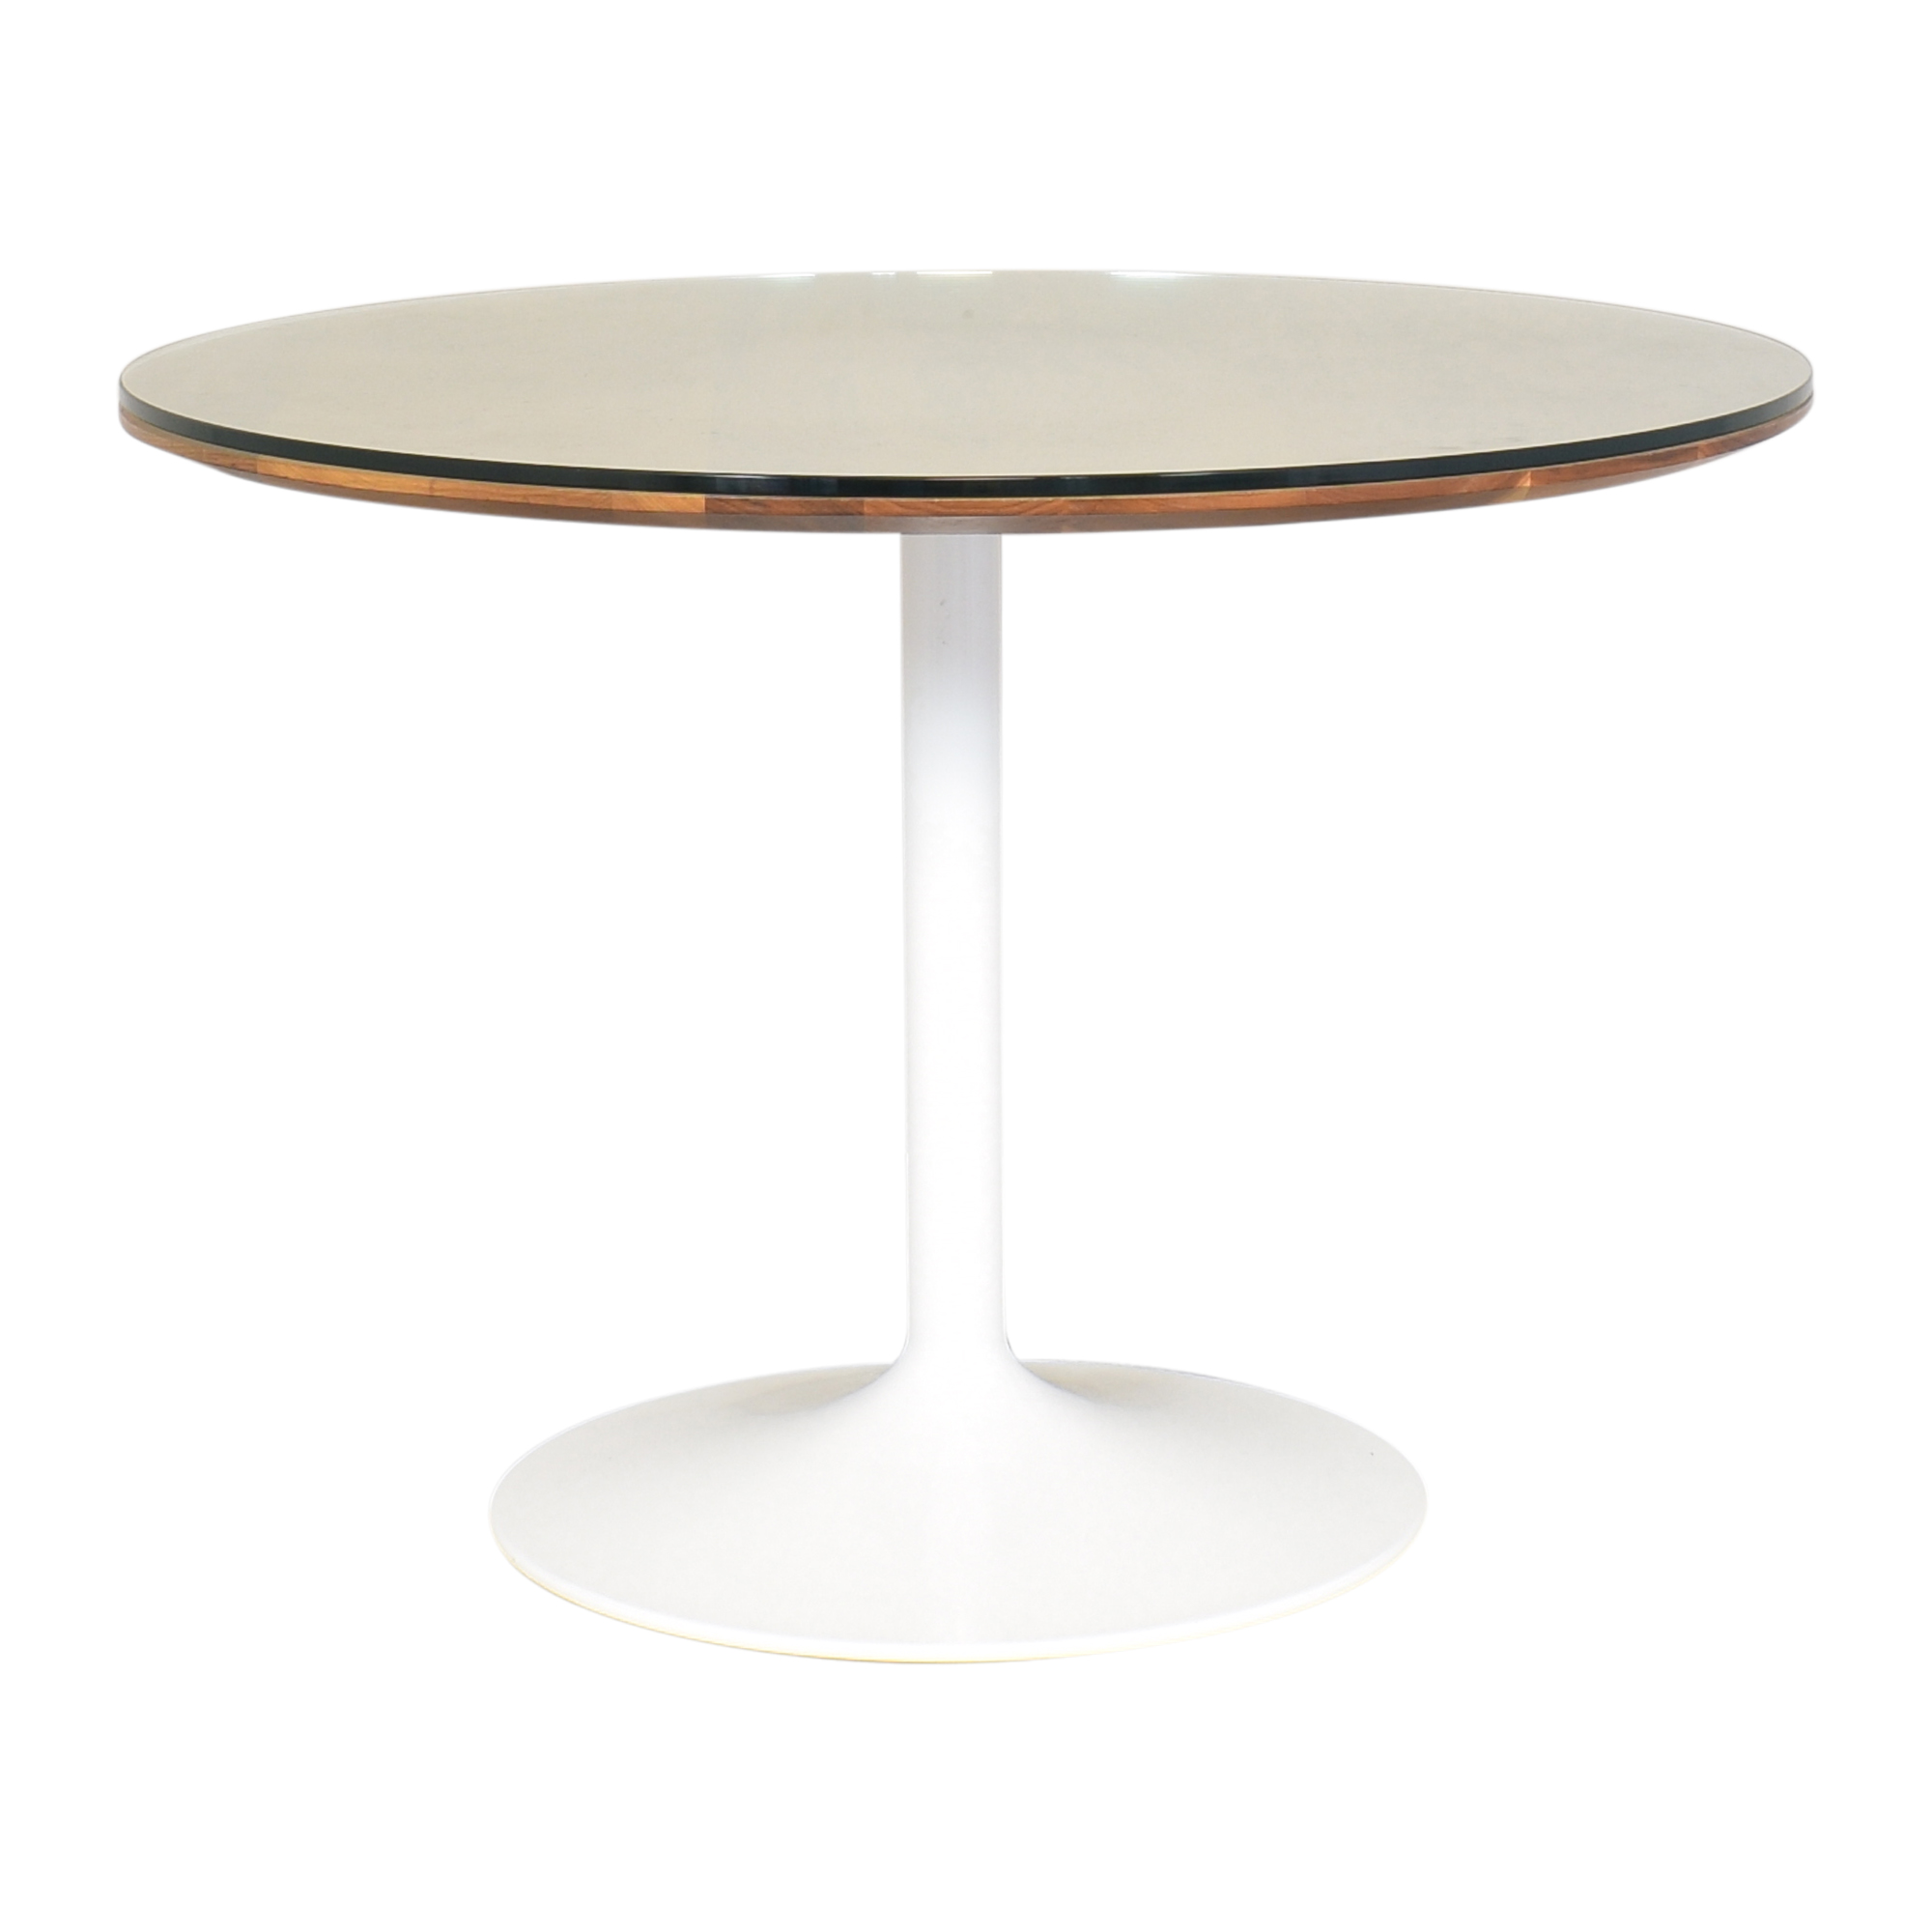 Room & Board Room & Board Aria Round Dining Table nyc